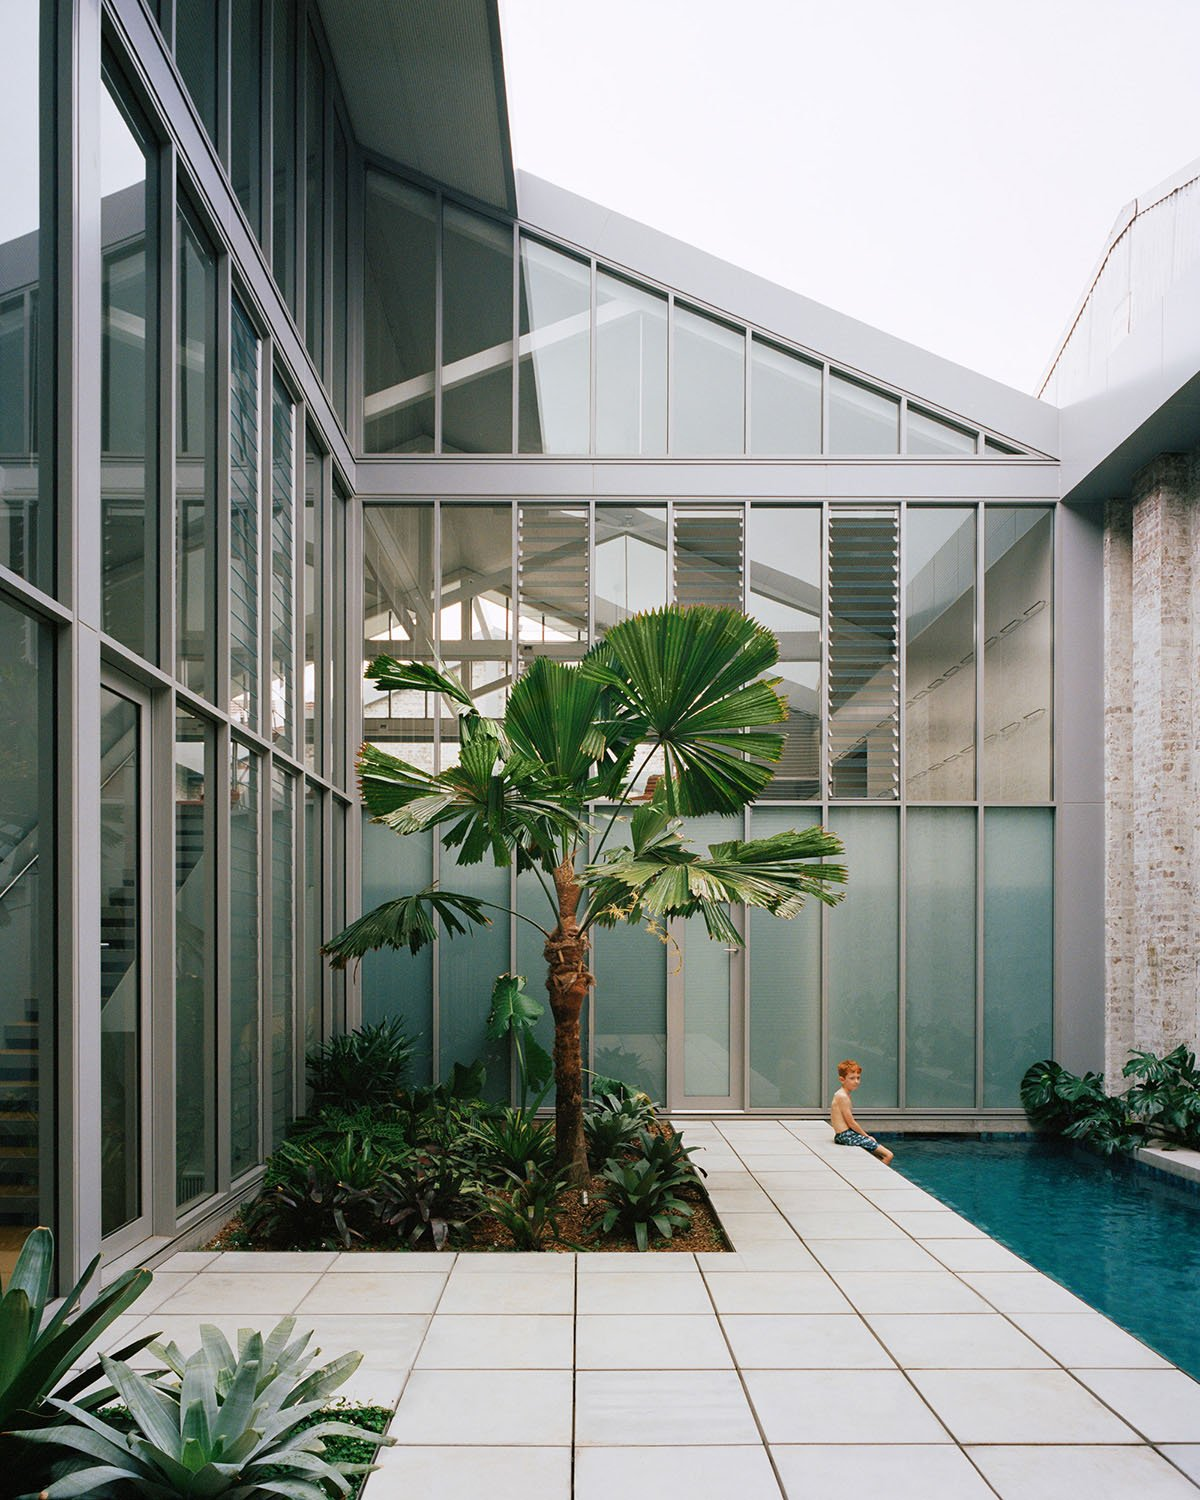 Internal courtyard with pool Rory Gardiner